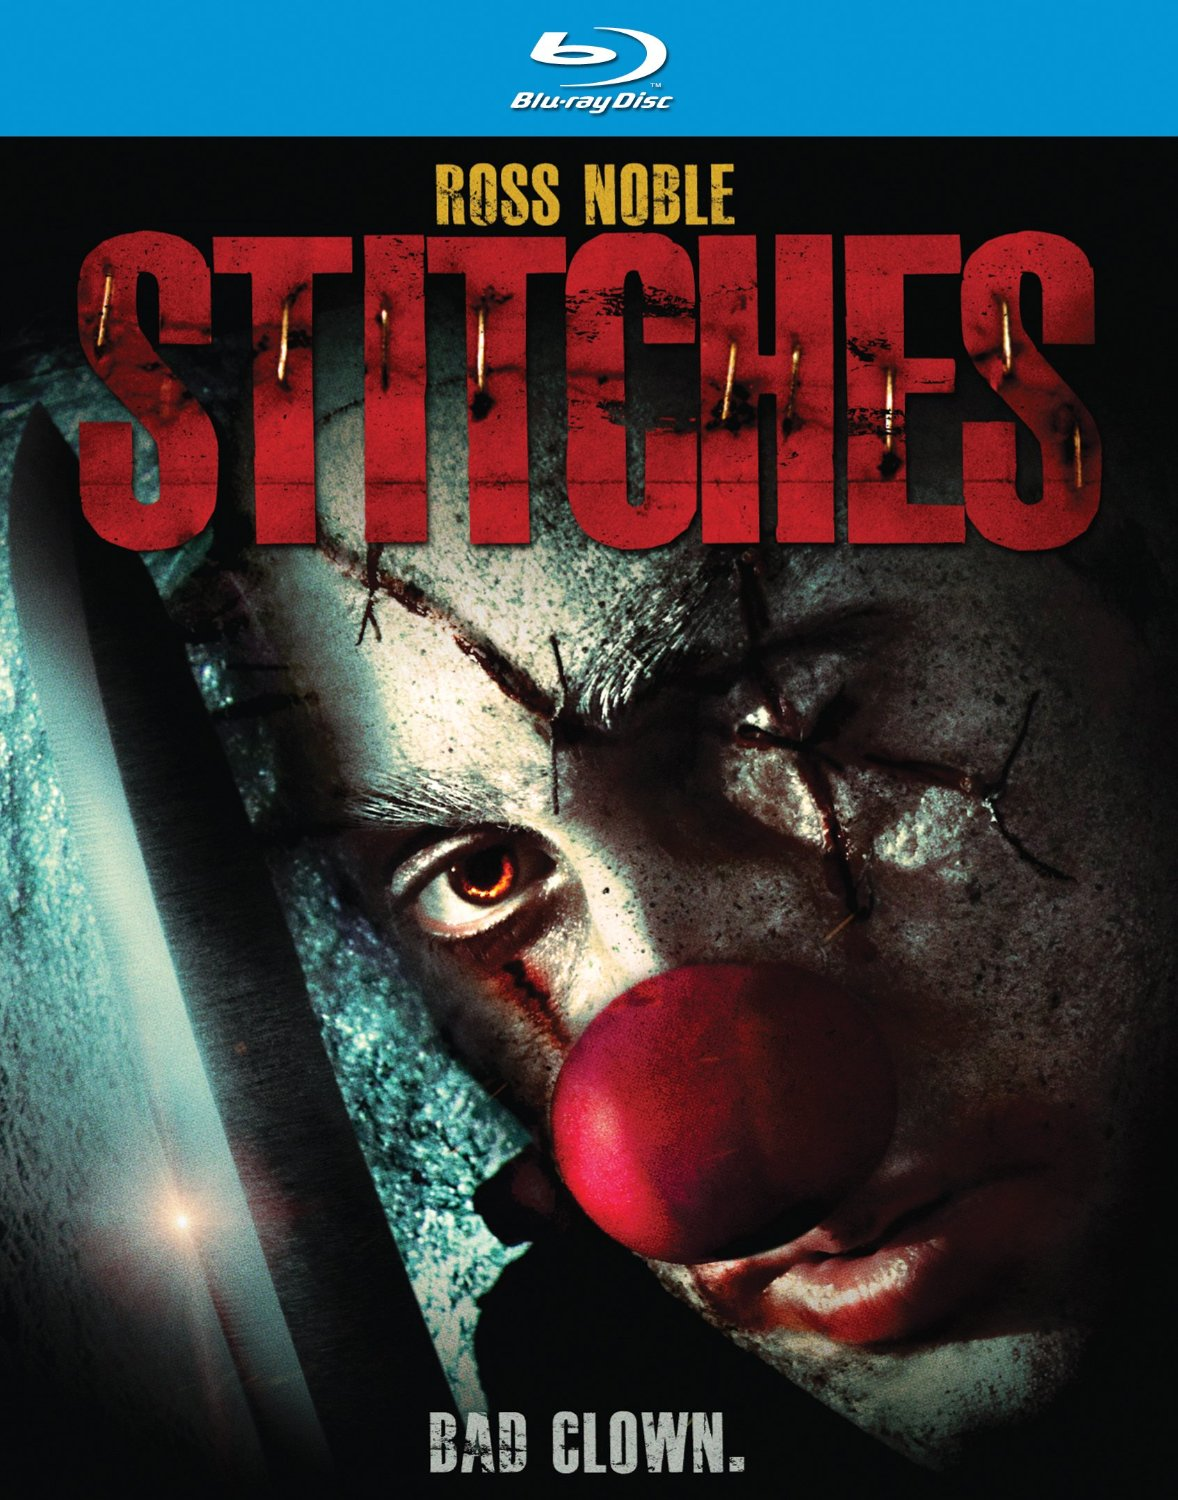 DVD Reviews: Stitches